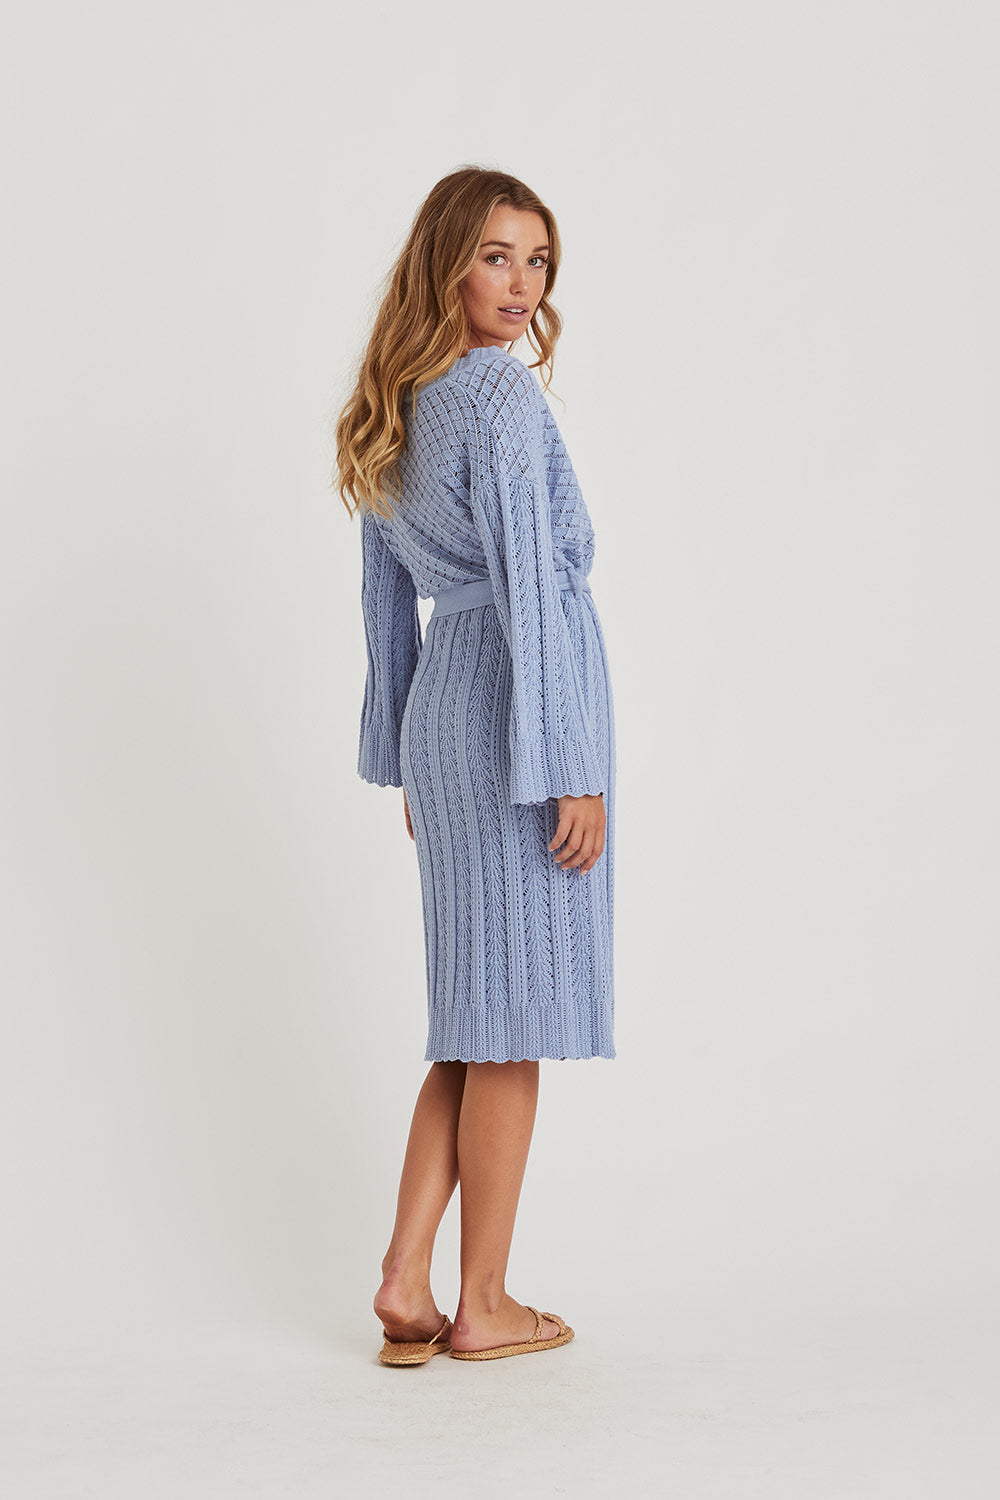 Gardenia Cardigan in Powder Blue